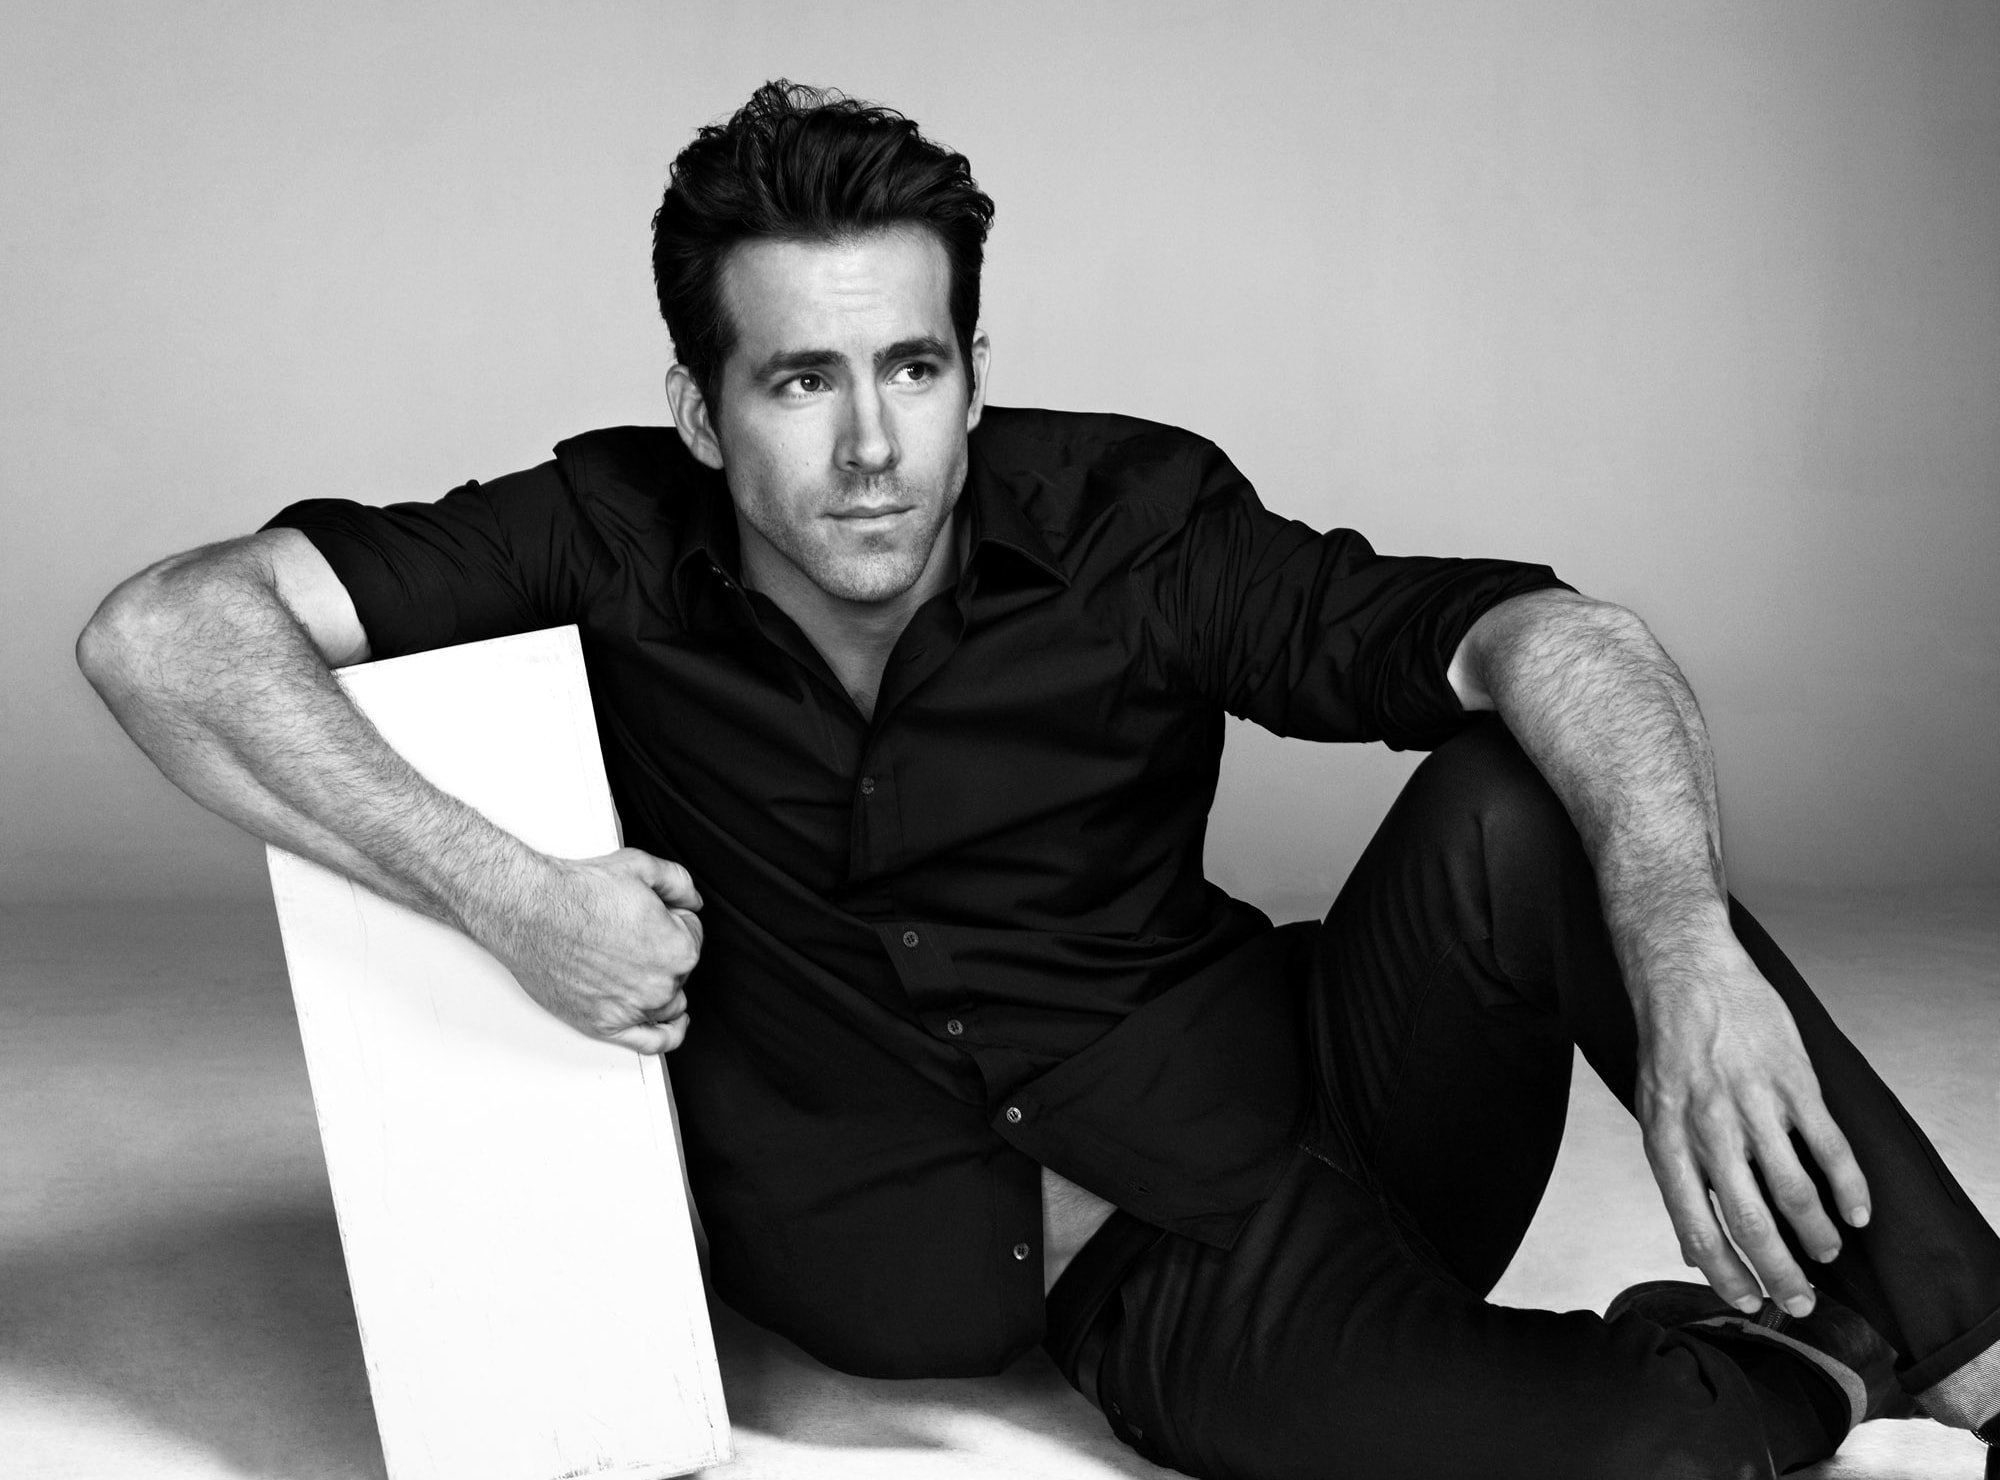 Ryan Reynolds Widescreen for desktop